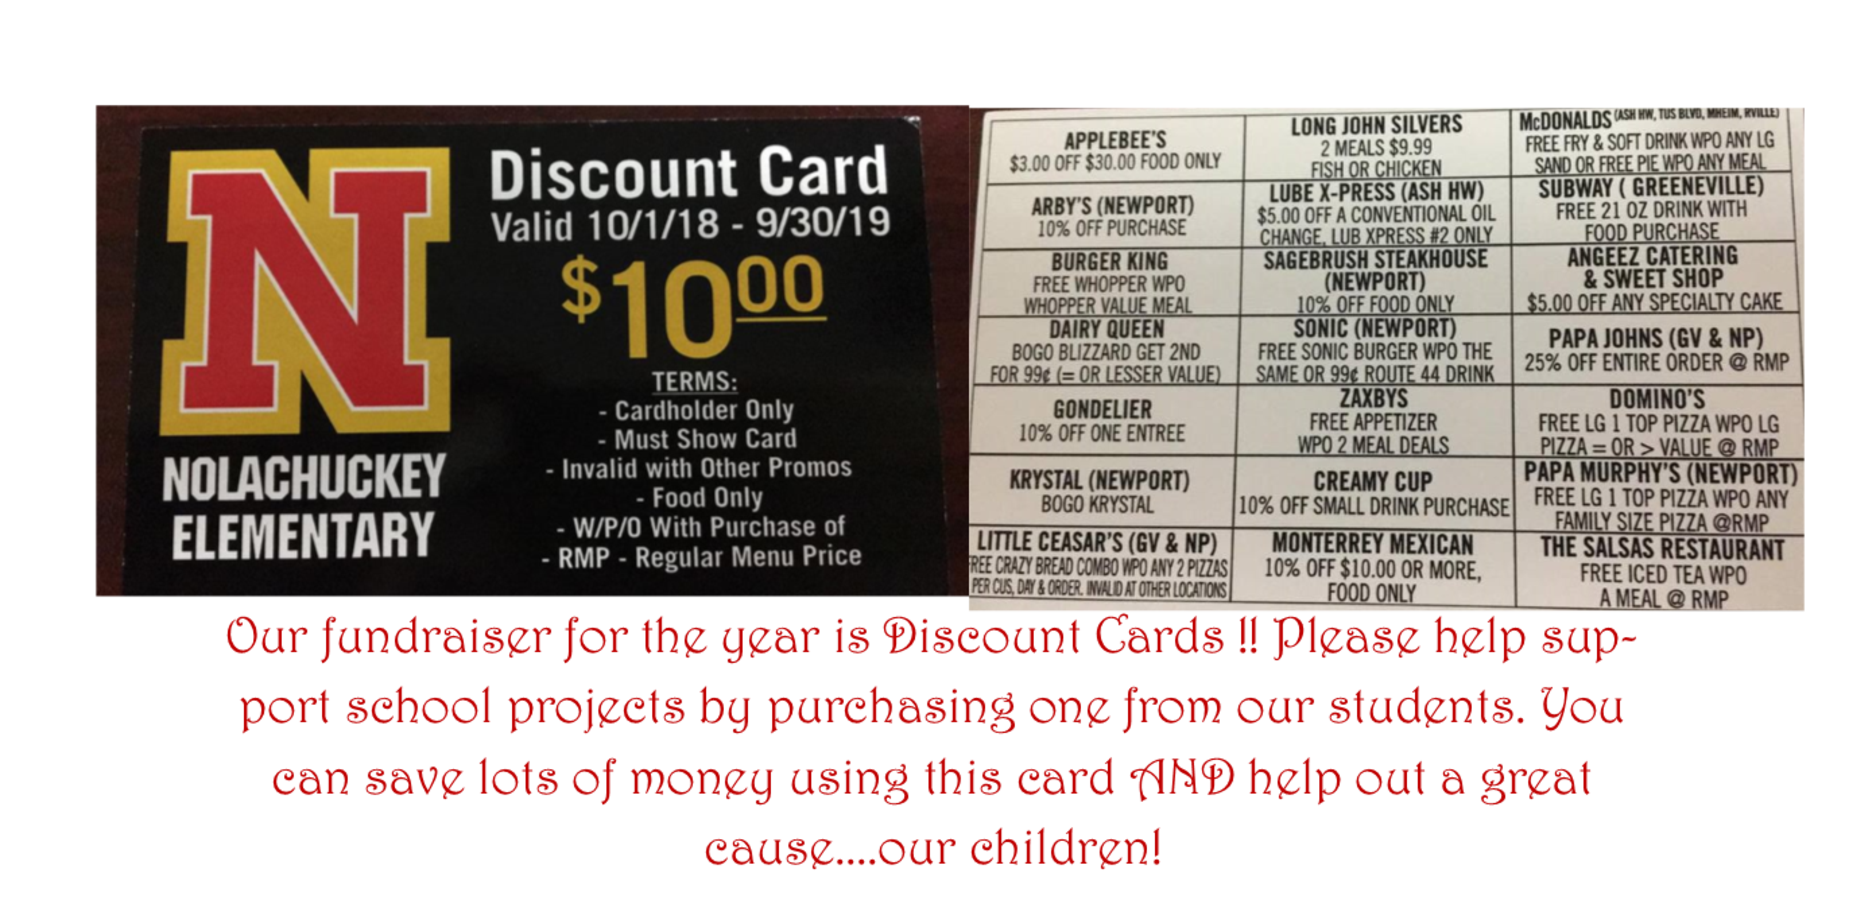 Photo of the front and back of the Nolachuckey School Discount Card